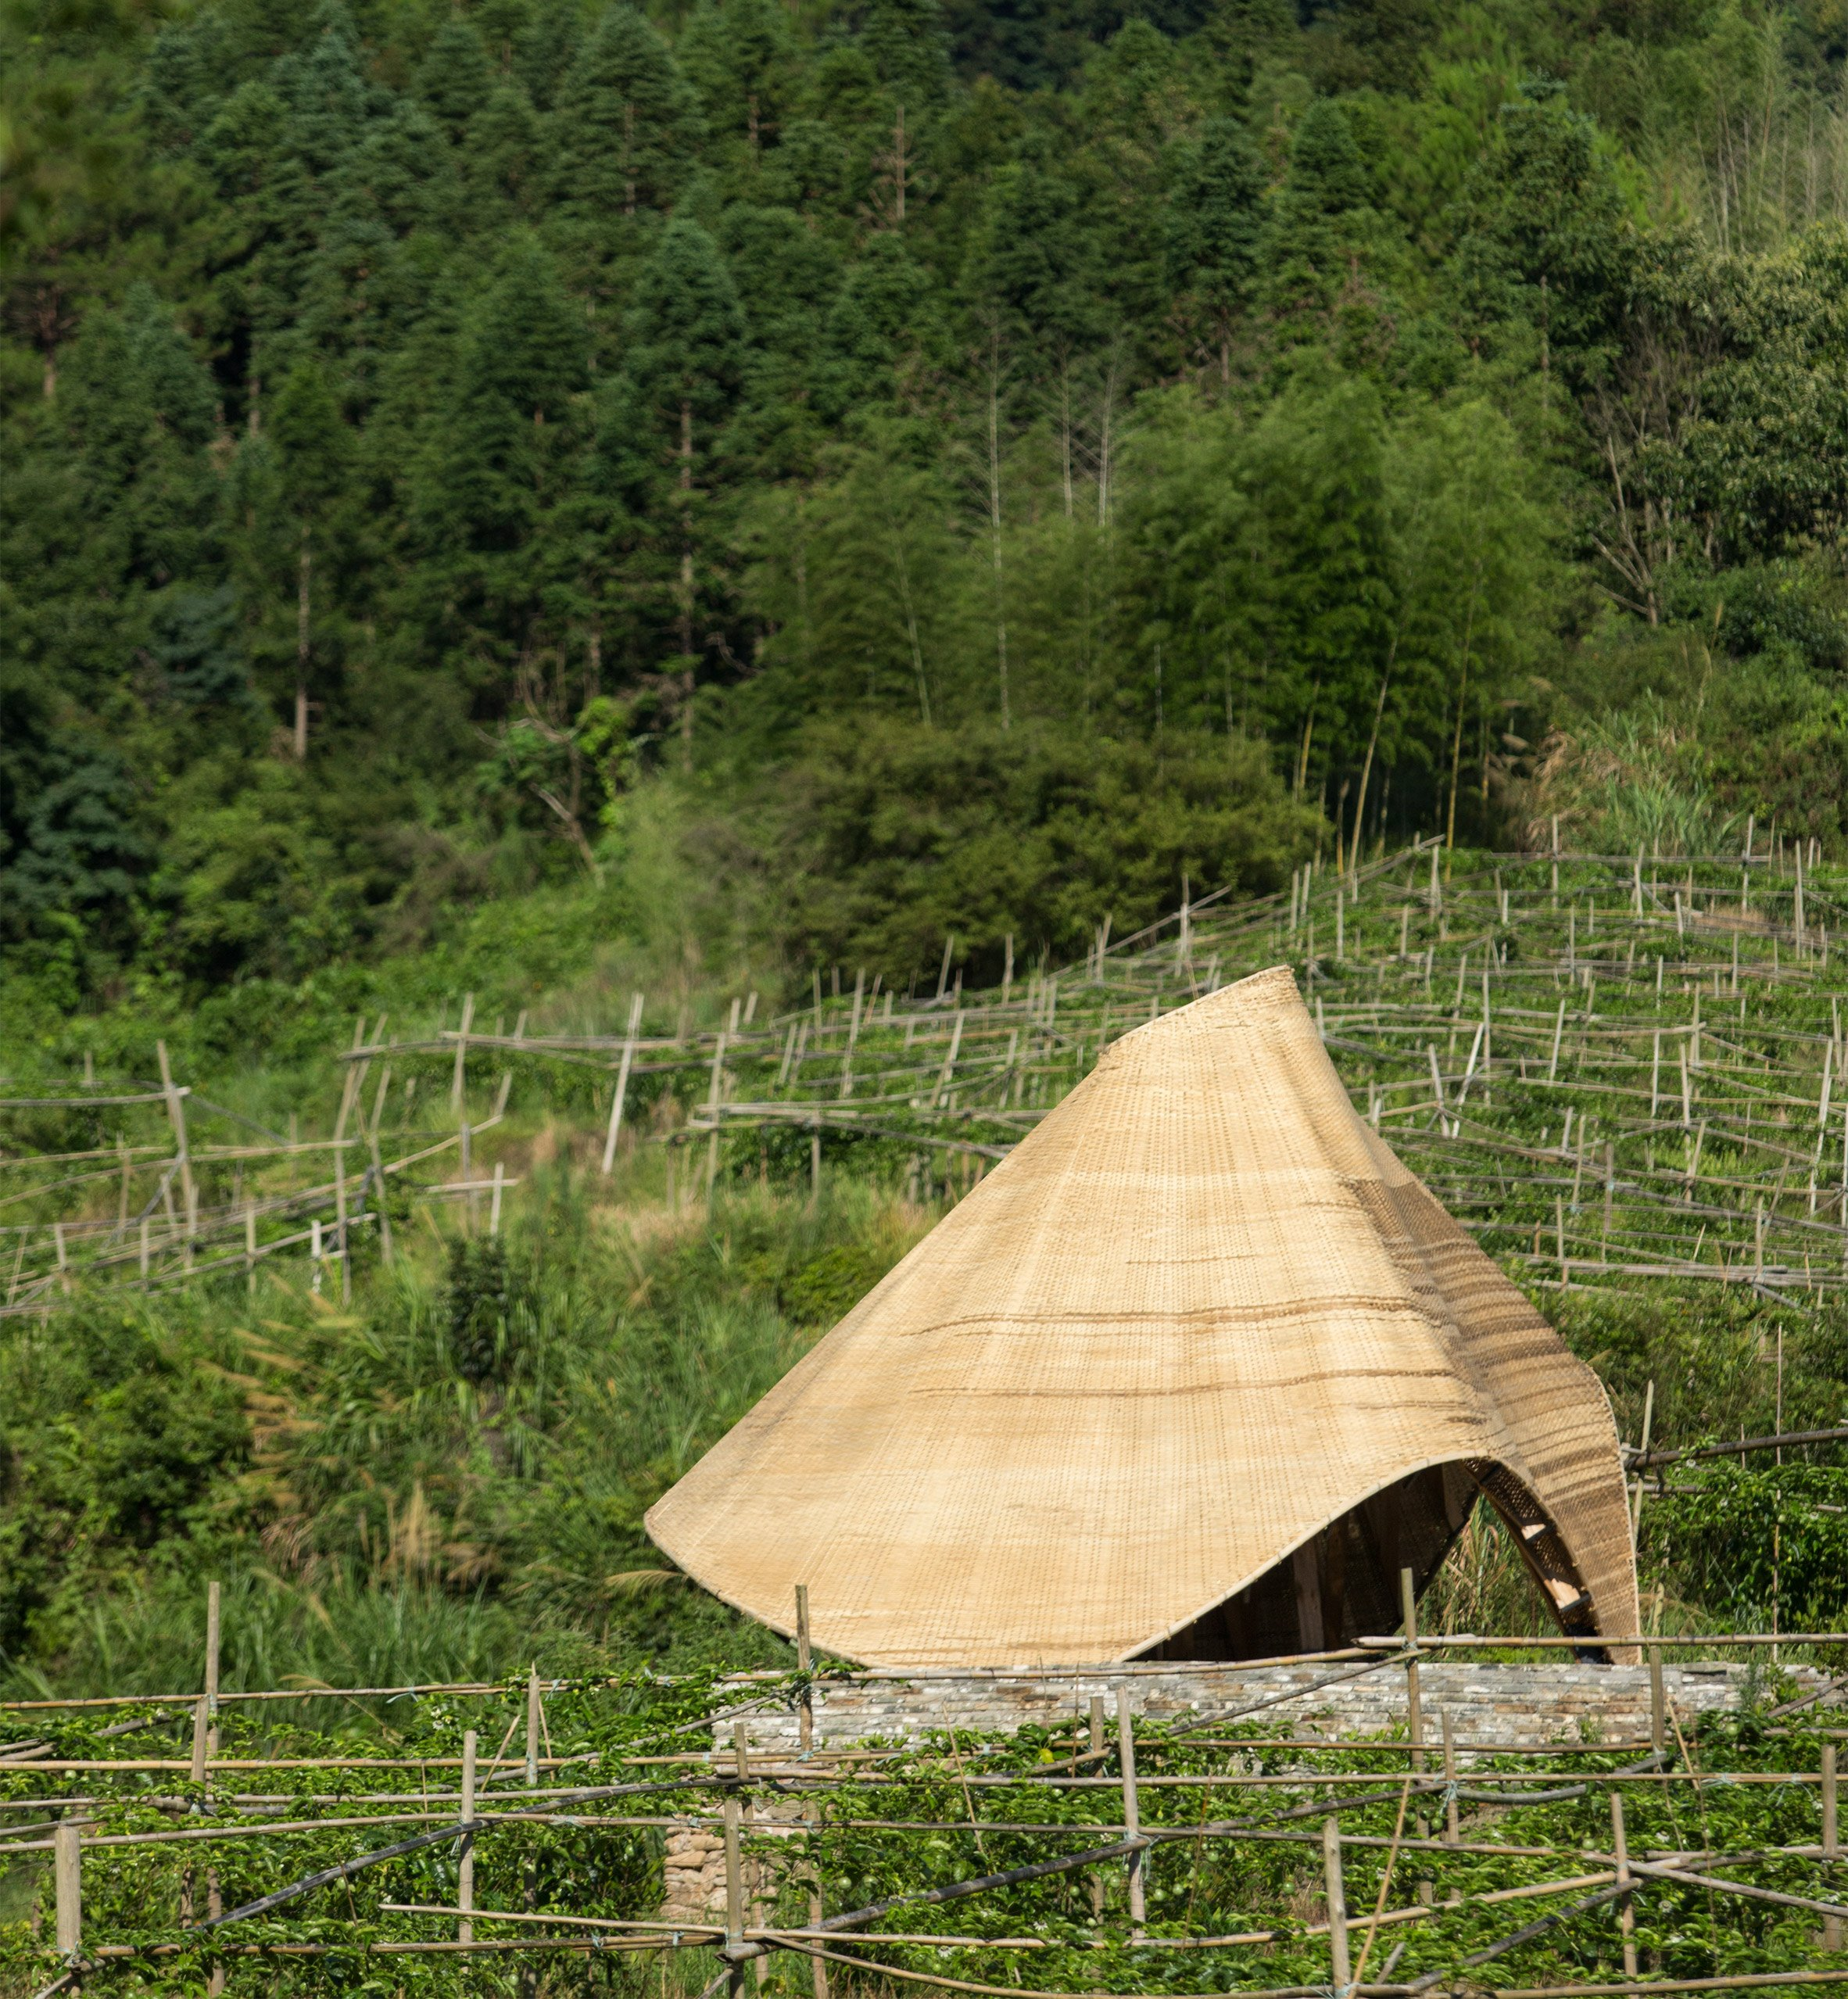 "Students ""reinvigorate"" traditional bamboo weaving with digital technologies for Sun Room pavilion"